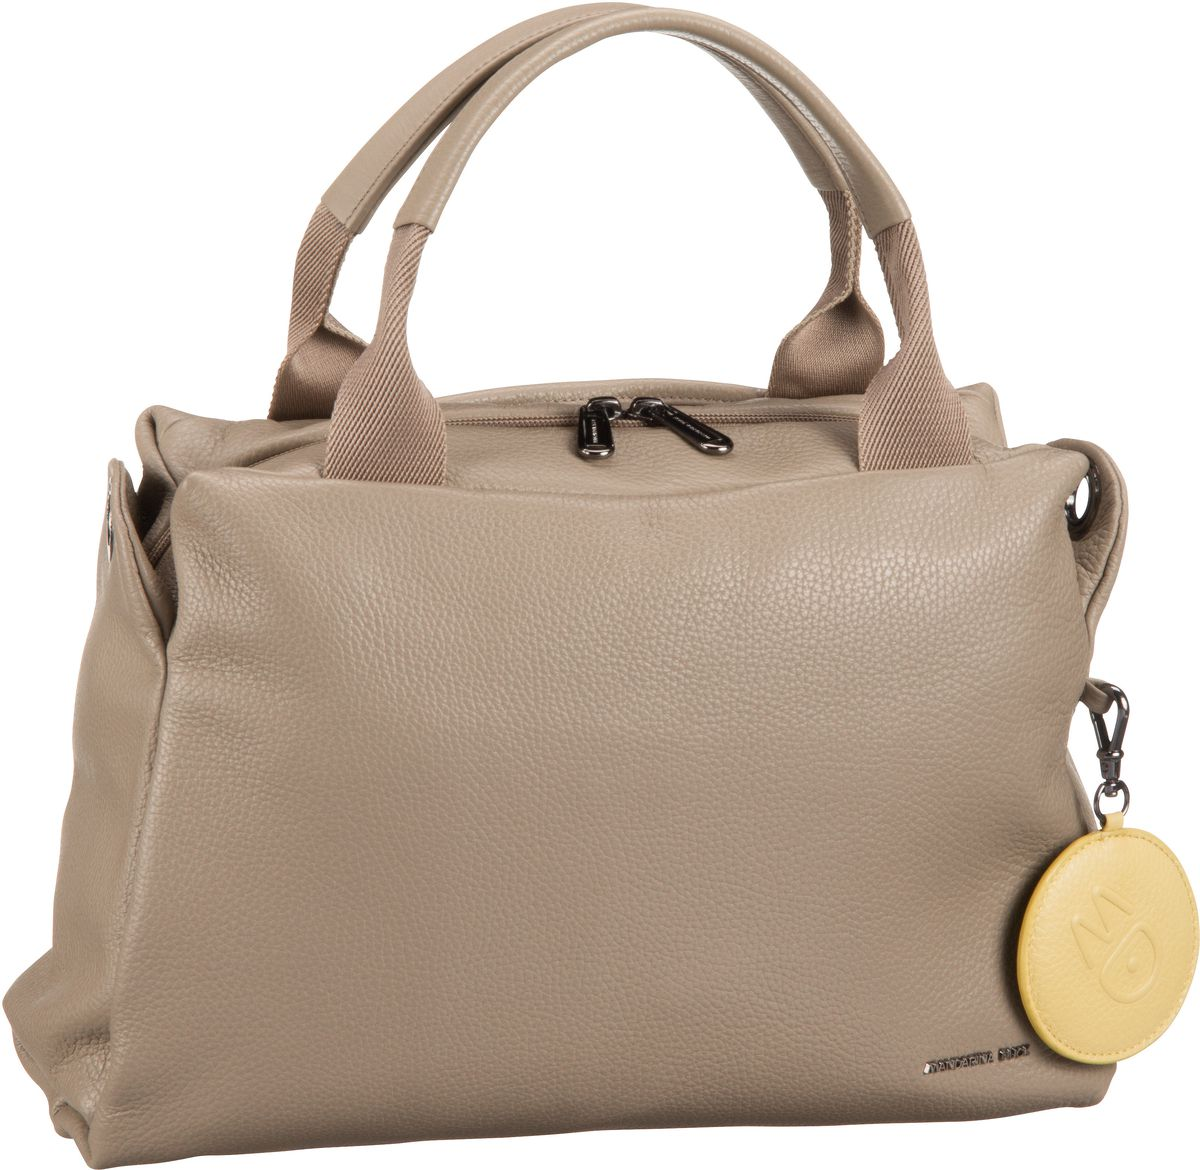 Handtasche Mellow Leather Boston Bag T87 Simply Taupe